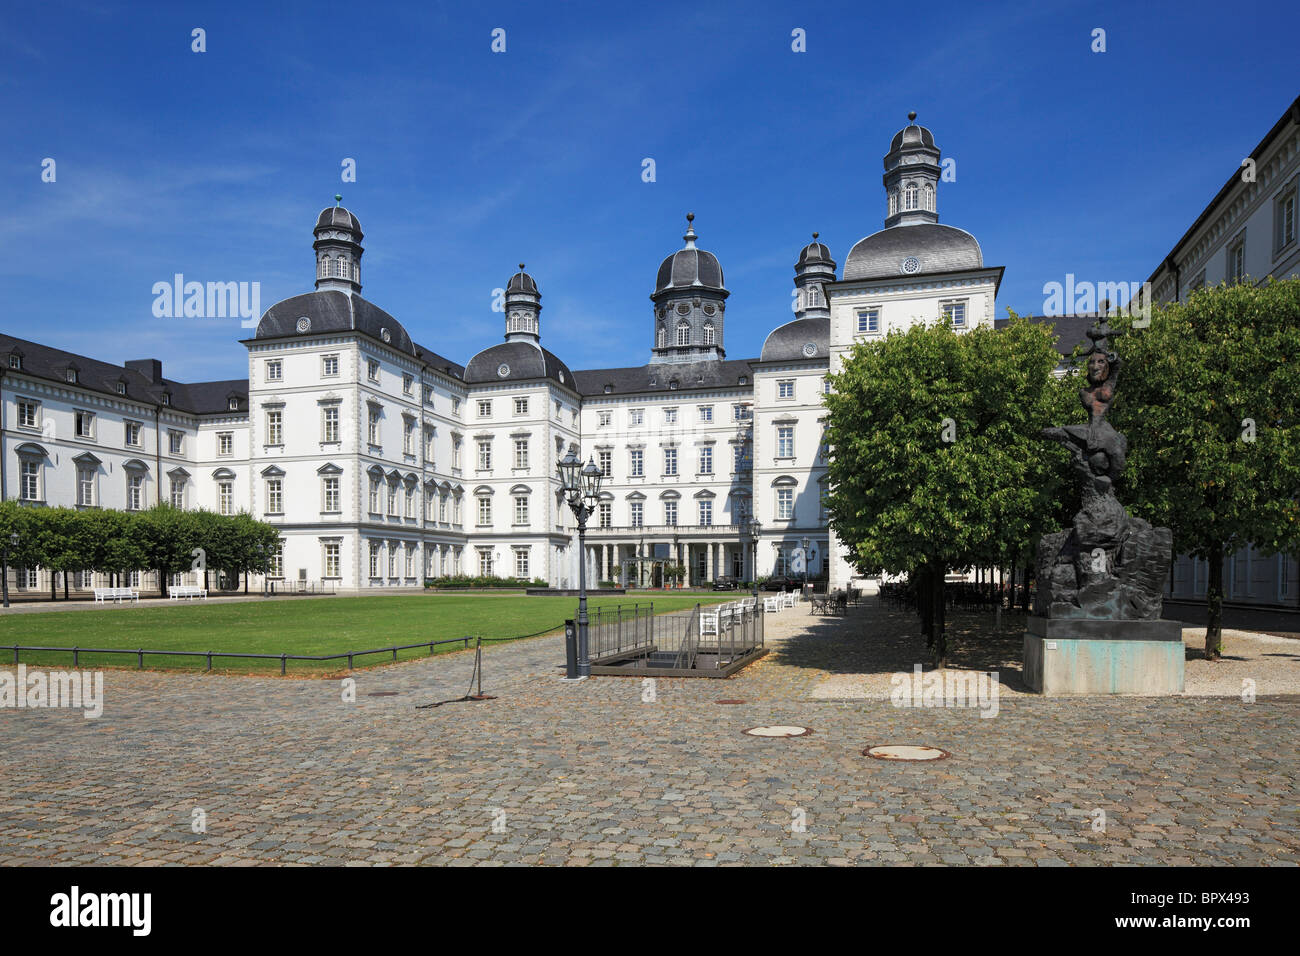 bensberg castle stock photos bensberg castle stock images alamy. Black Bedroom Furniture Sets. Home Design Ideas